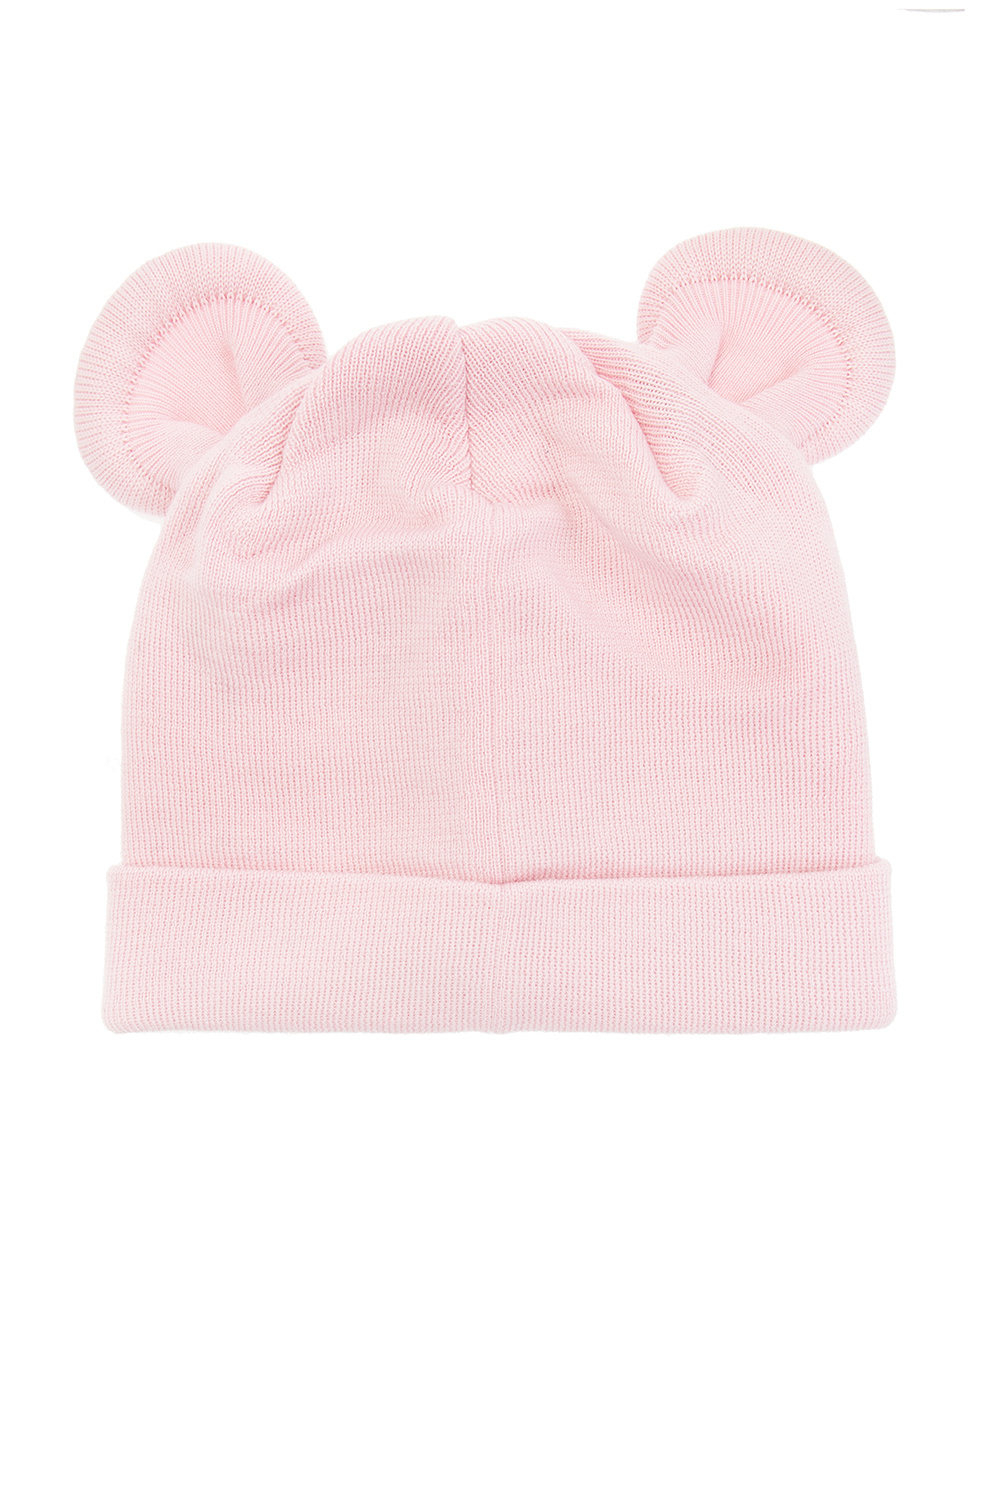 Palm Angels Kids Wool hat with appliqué